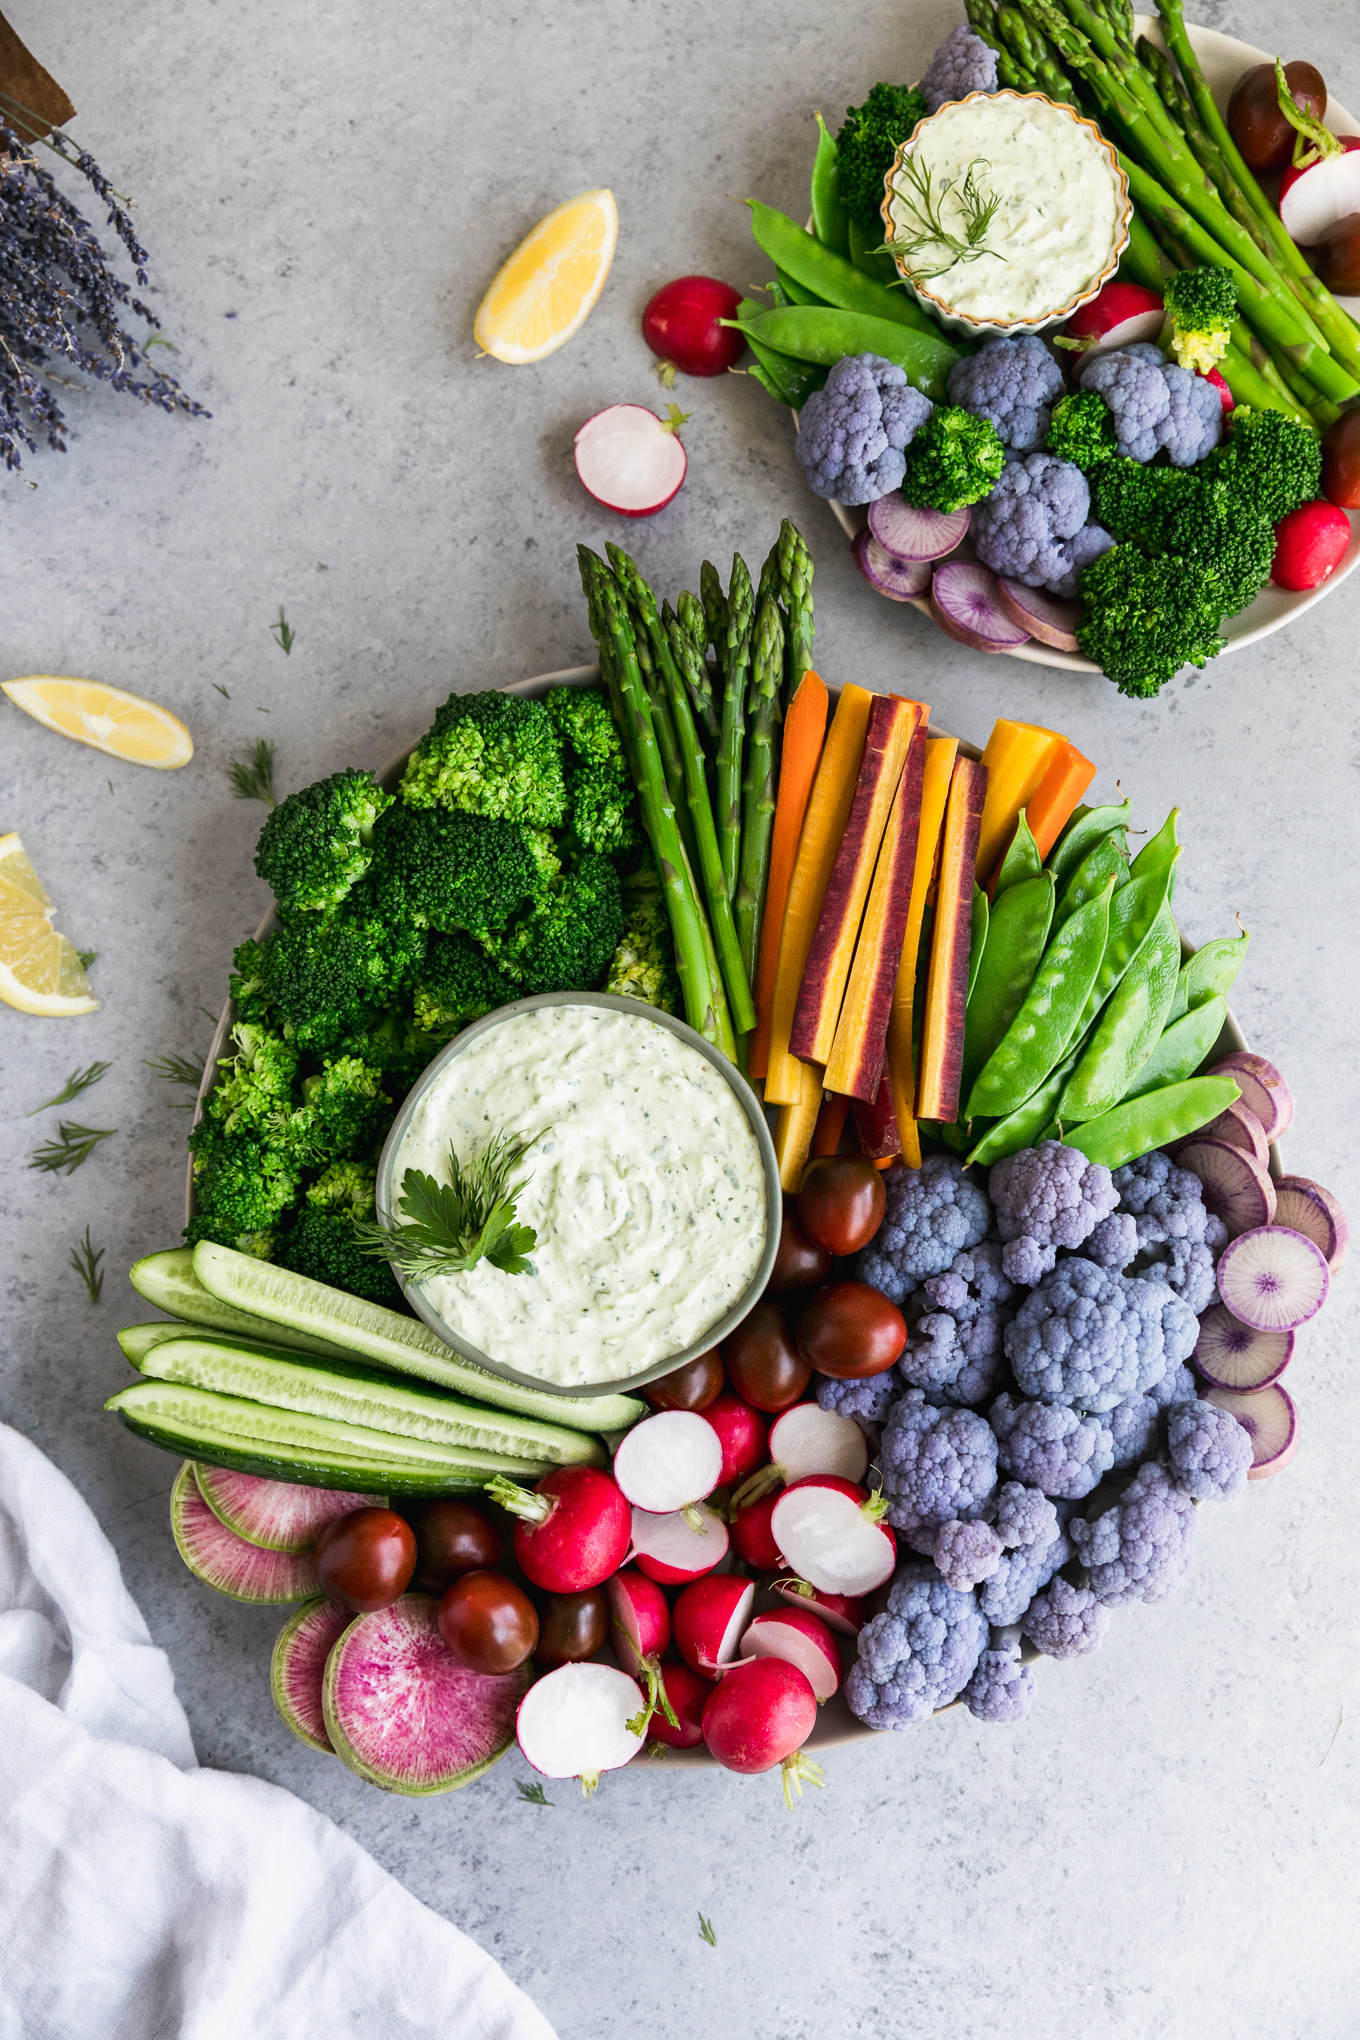 Overhead shot of a veggie platter with broccoli, asparagus, carrots, snap peas, purple cauliflower, radishes, and cucumbers, with a smaller veggie tray in the top right corner